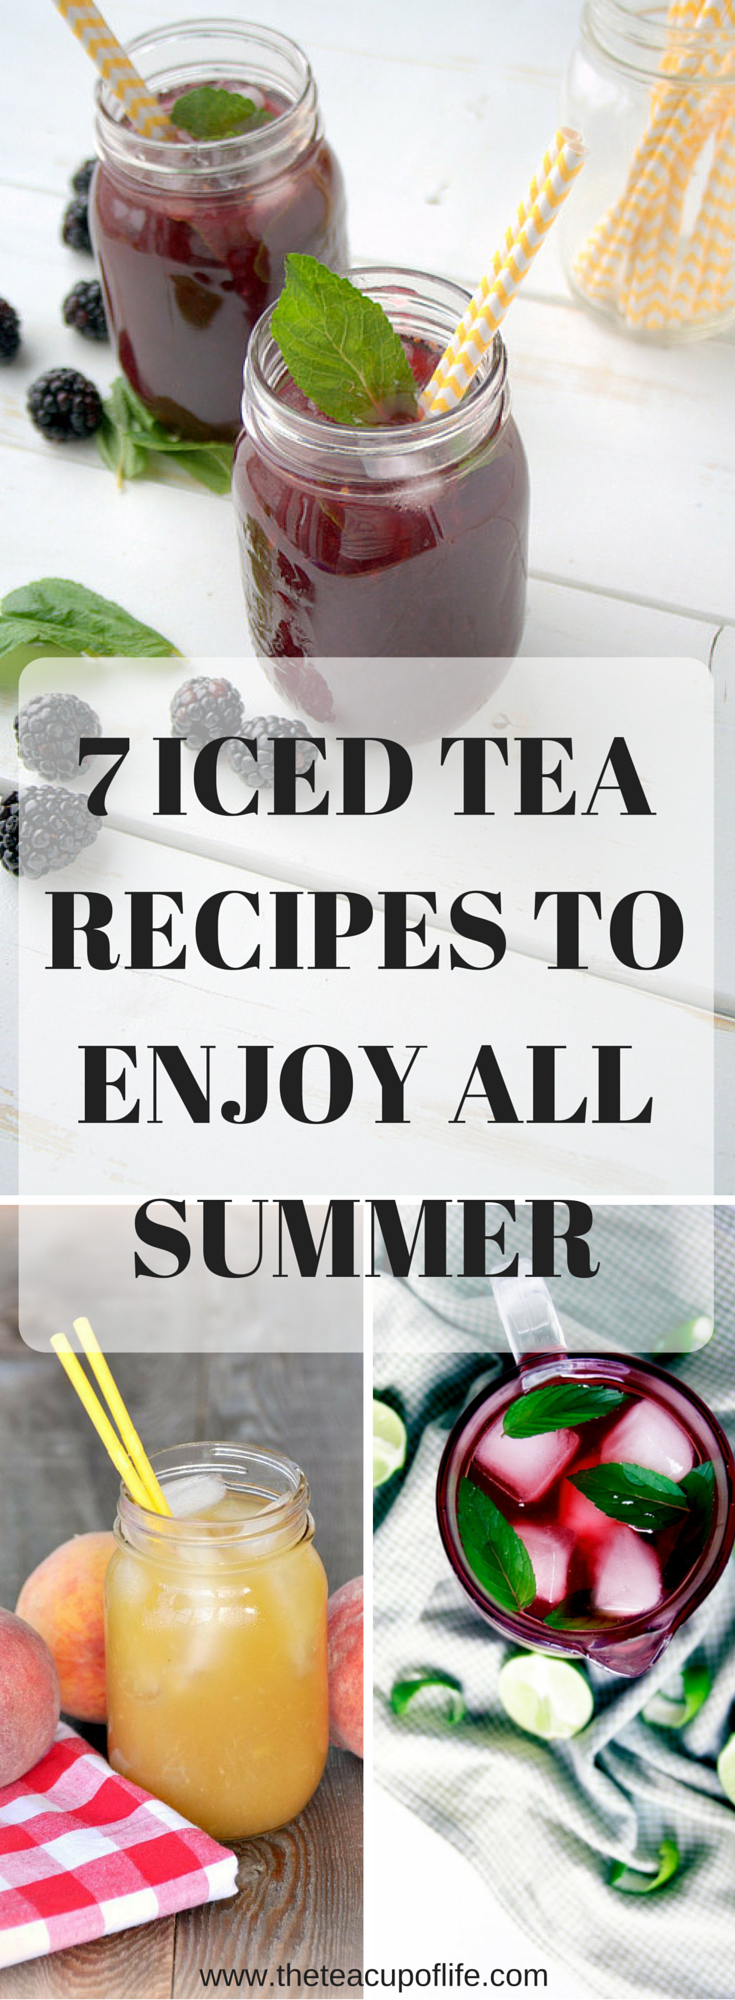 7 Must Make Iced Tea Recipes to Enjoy All Summer | The Cup of Life